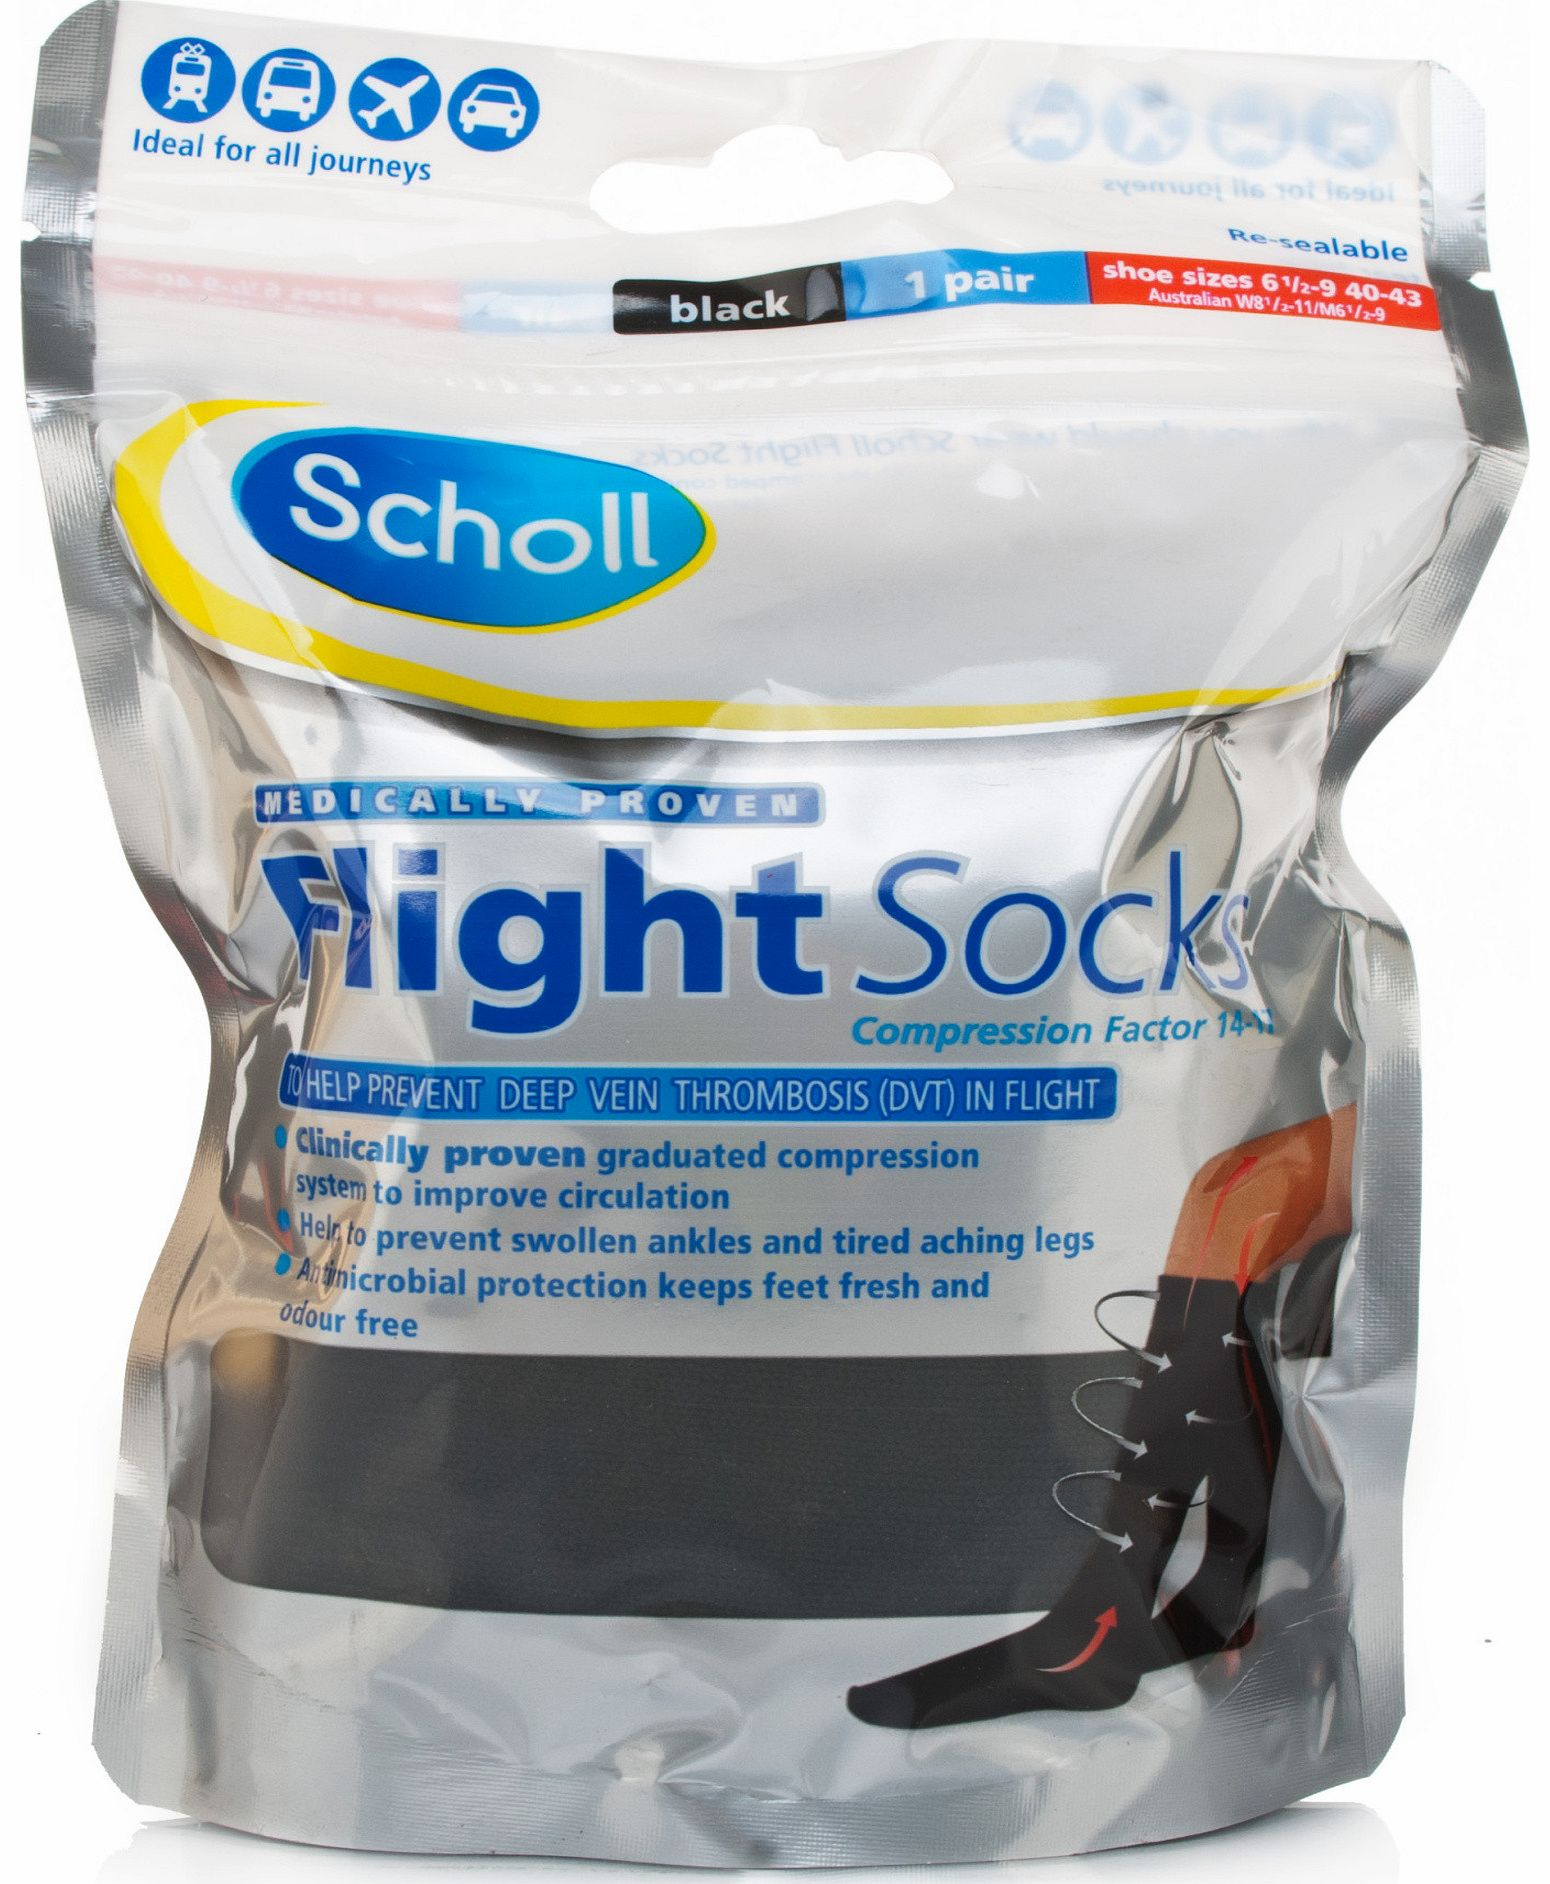 Flight Socks Sizes 6.5-9